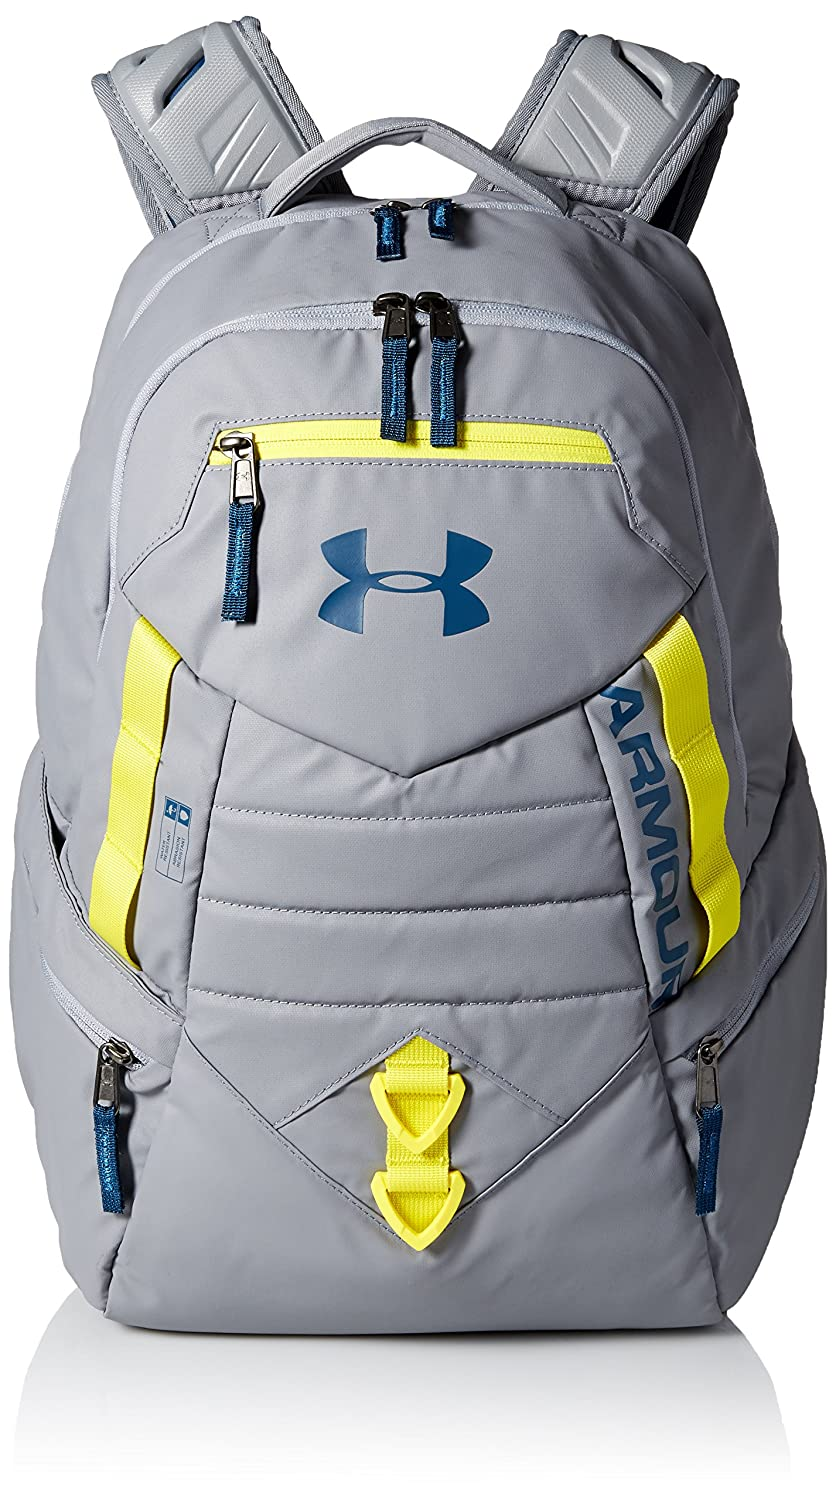 fb516cbb6a Under Armour Quantum Backpack, Steel, One Size, Backpacks - Amazon ...